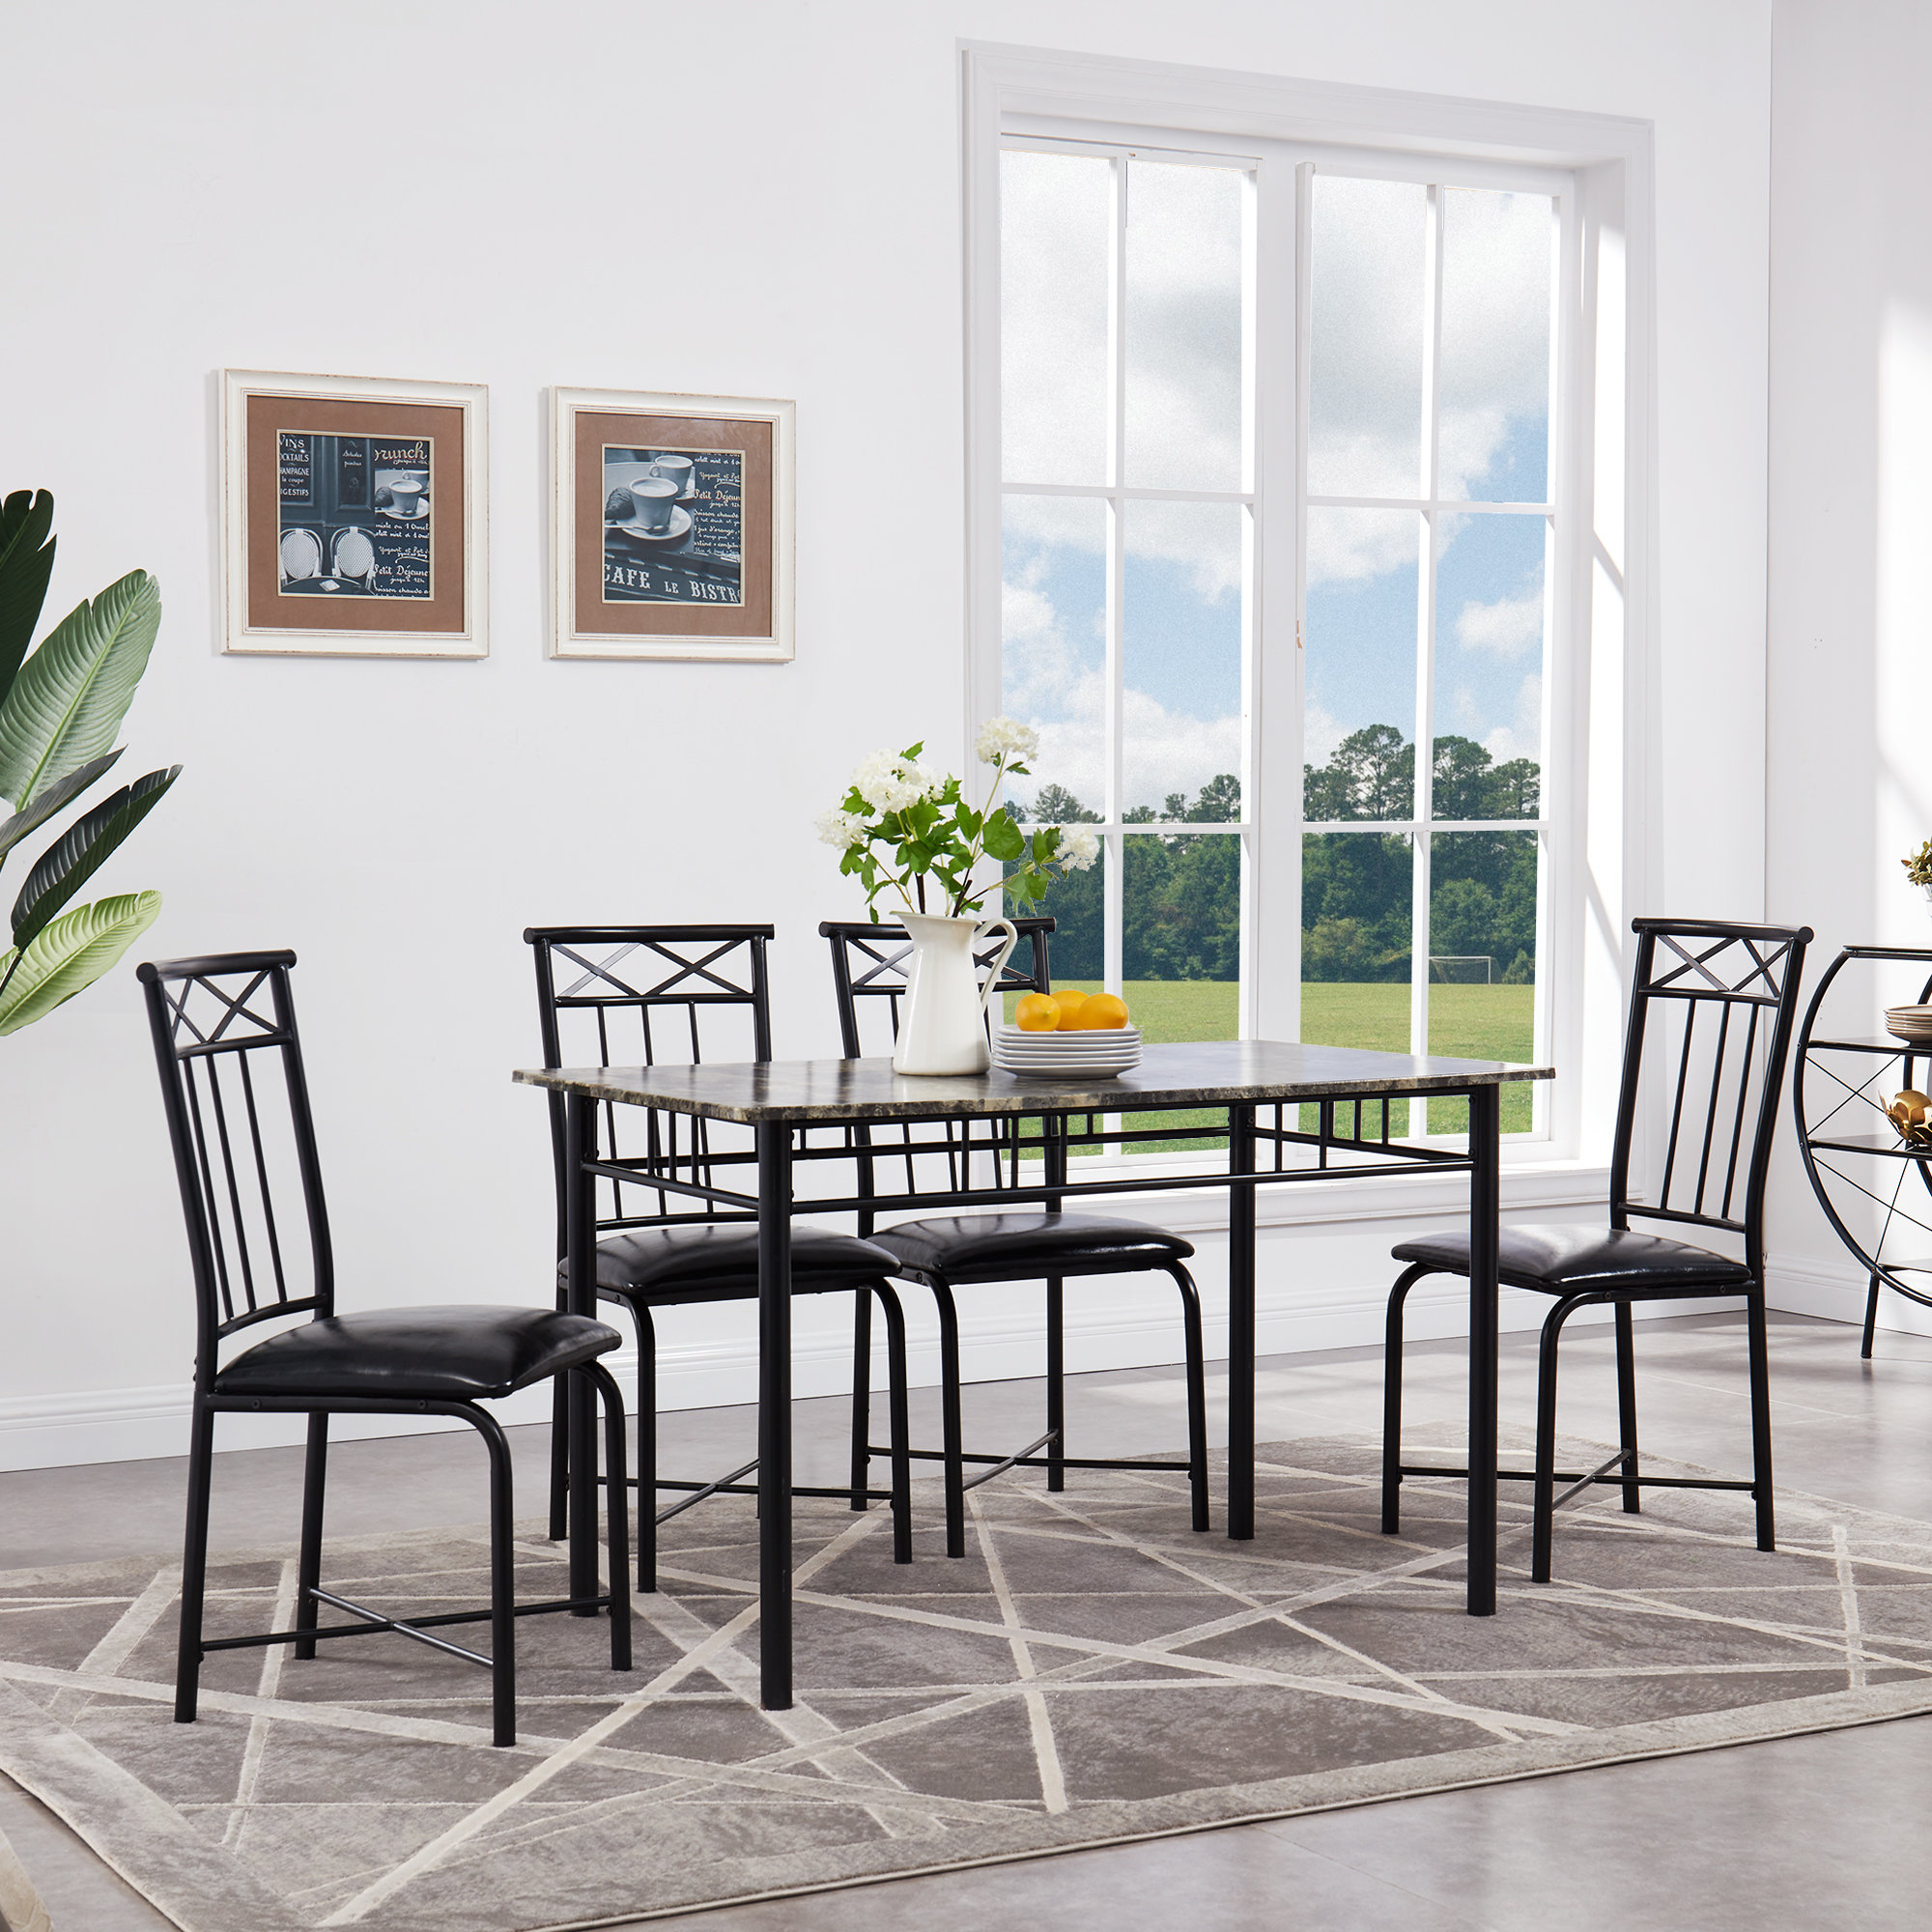 Reinert 5 Piece Dining Set Intended For Best And Newest Taulbee 5 Piece Dining Sets (View 5 of 20)